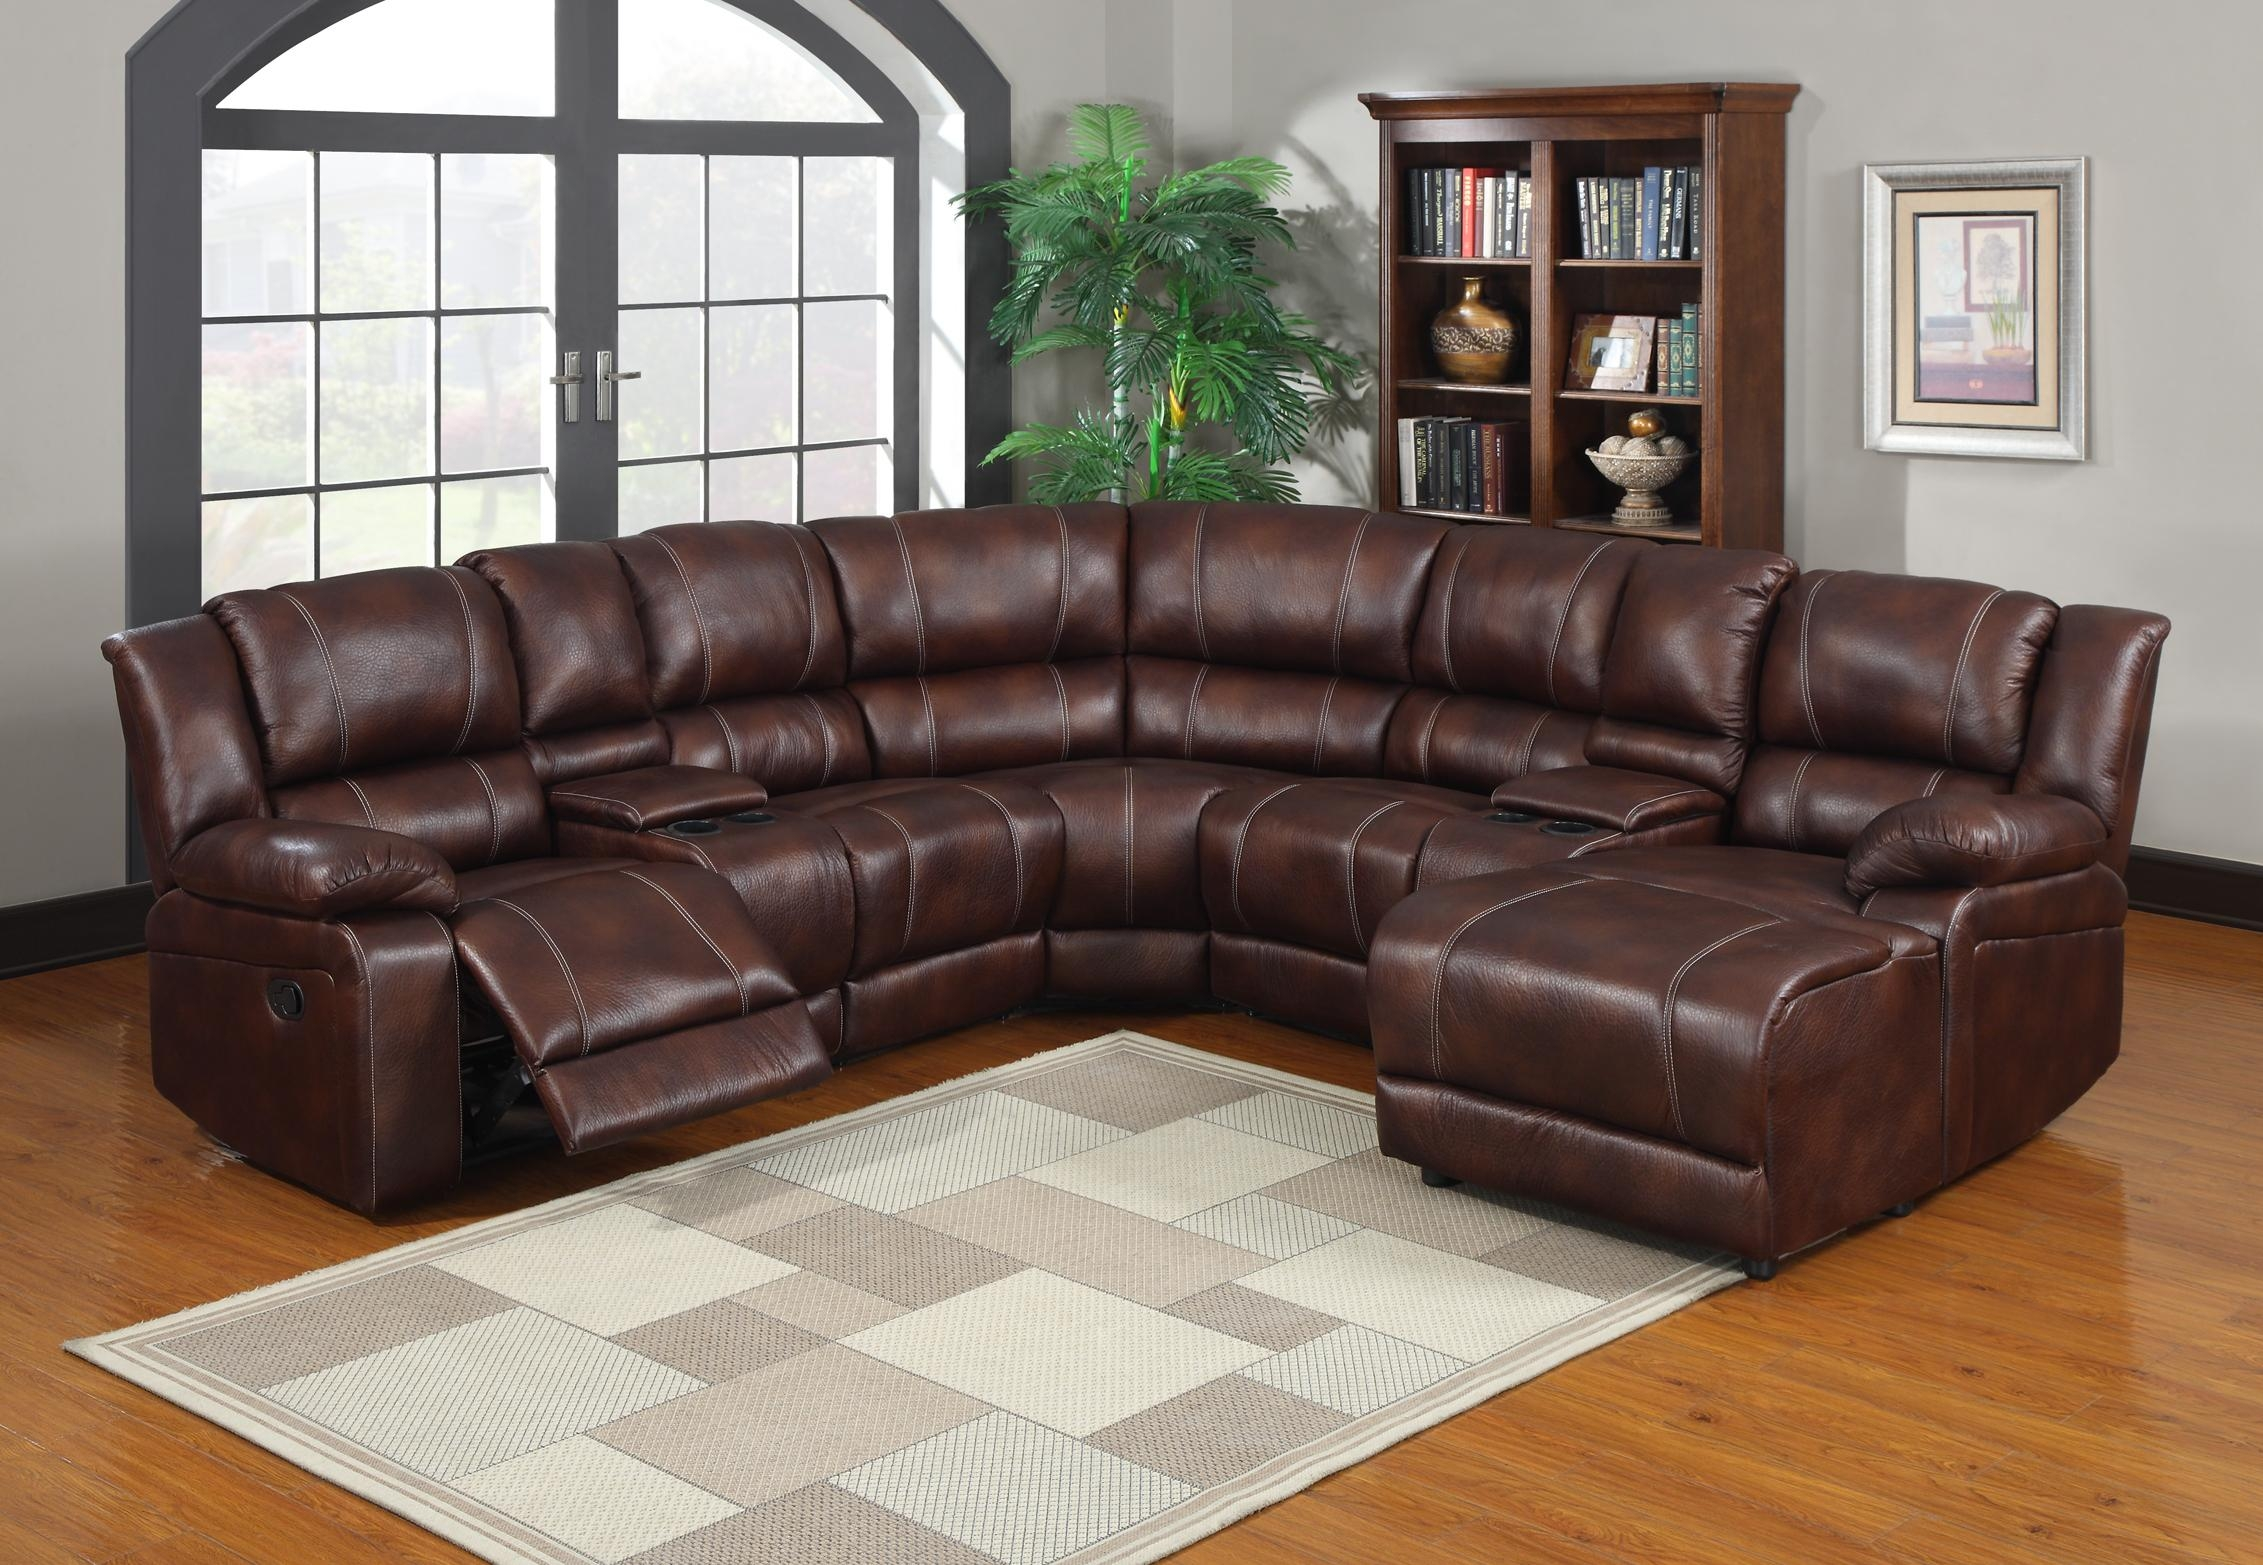 Furniture Reclining Sectional Sofas With Cup Holders | Newmediahub Intended For Sofas With Cup Holders (Image 5 of 20)